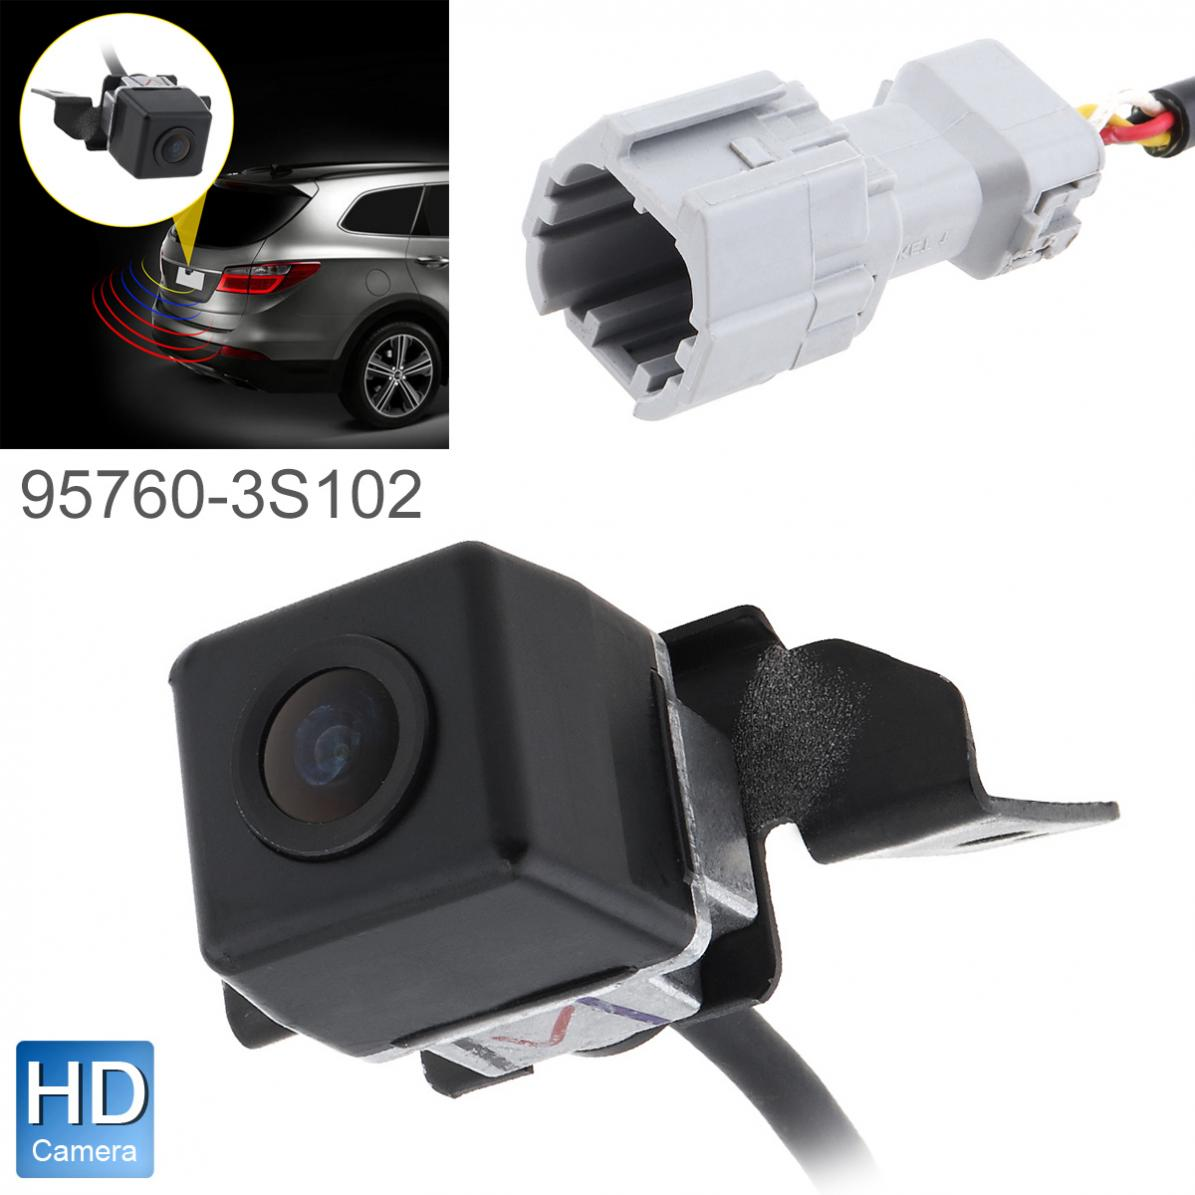 12V Car Rear View Camera Auto Backup Parking Assist Camera OEM 957603S102 95760-3S102 596-00473 for 2011-12-13-14 Hyundai Sonata12V Car Rear View Camera Auto Backup Parking Assist Camera OEM 957603S102 95760-3S102 596-00473 for 2011-12-13-14 Hyundai Sonata